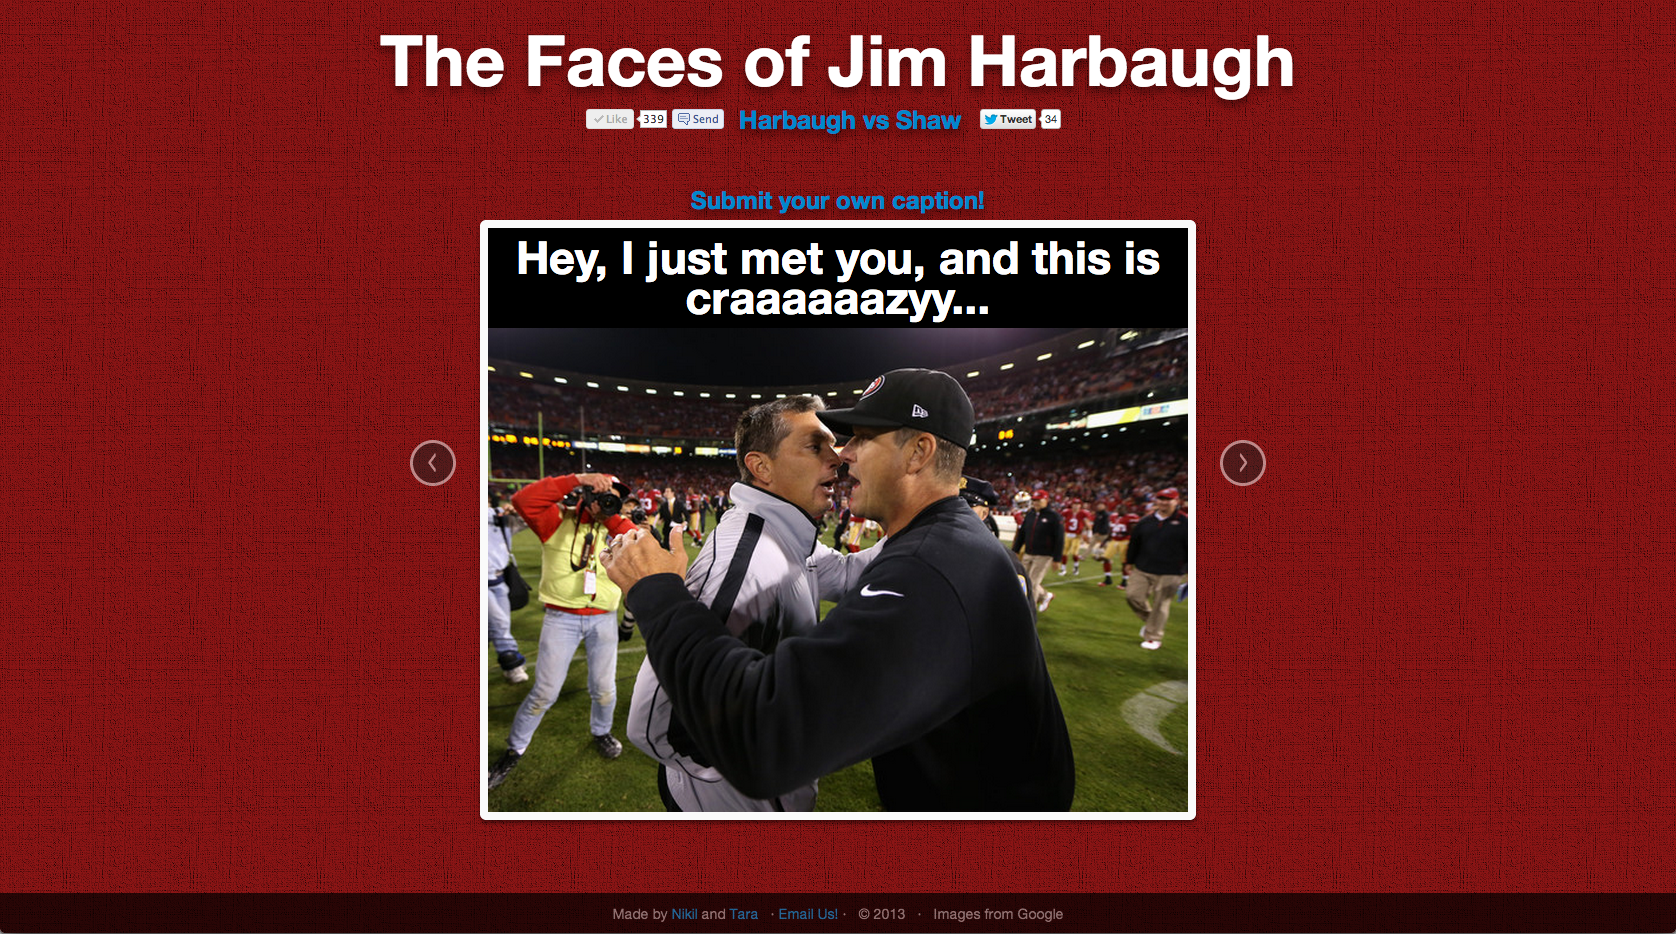 Faces of Harbaugh: Hey I just met you, and this is craaaaaazy